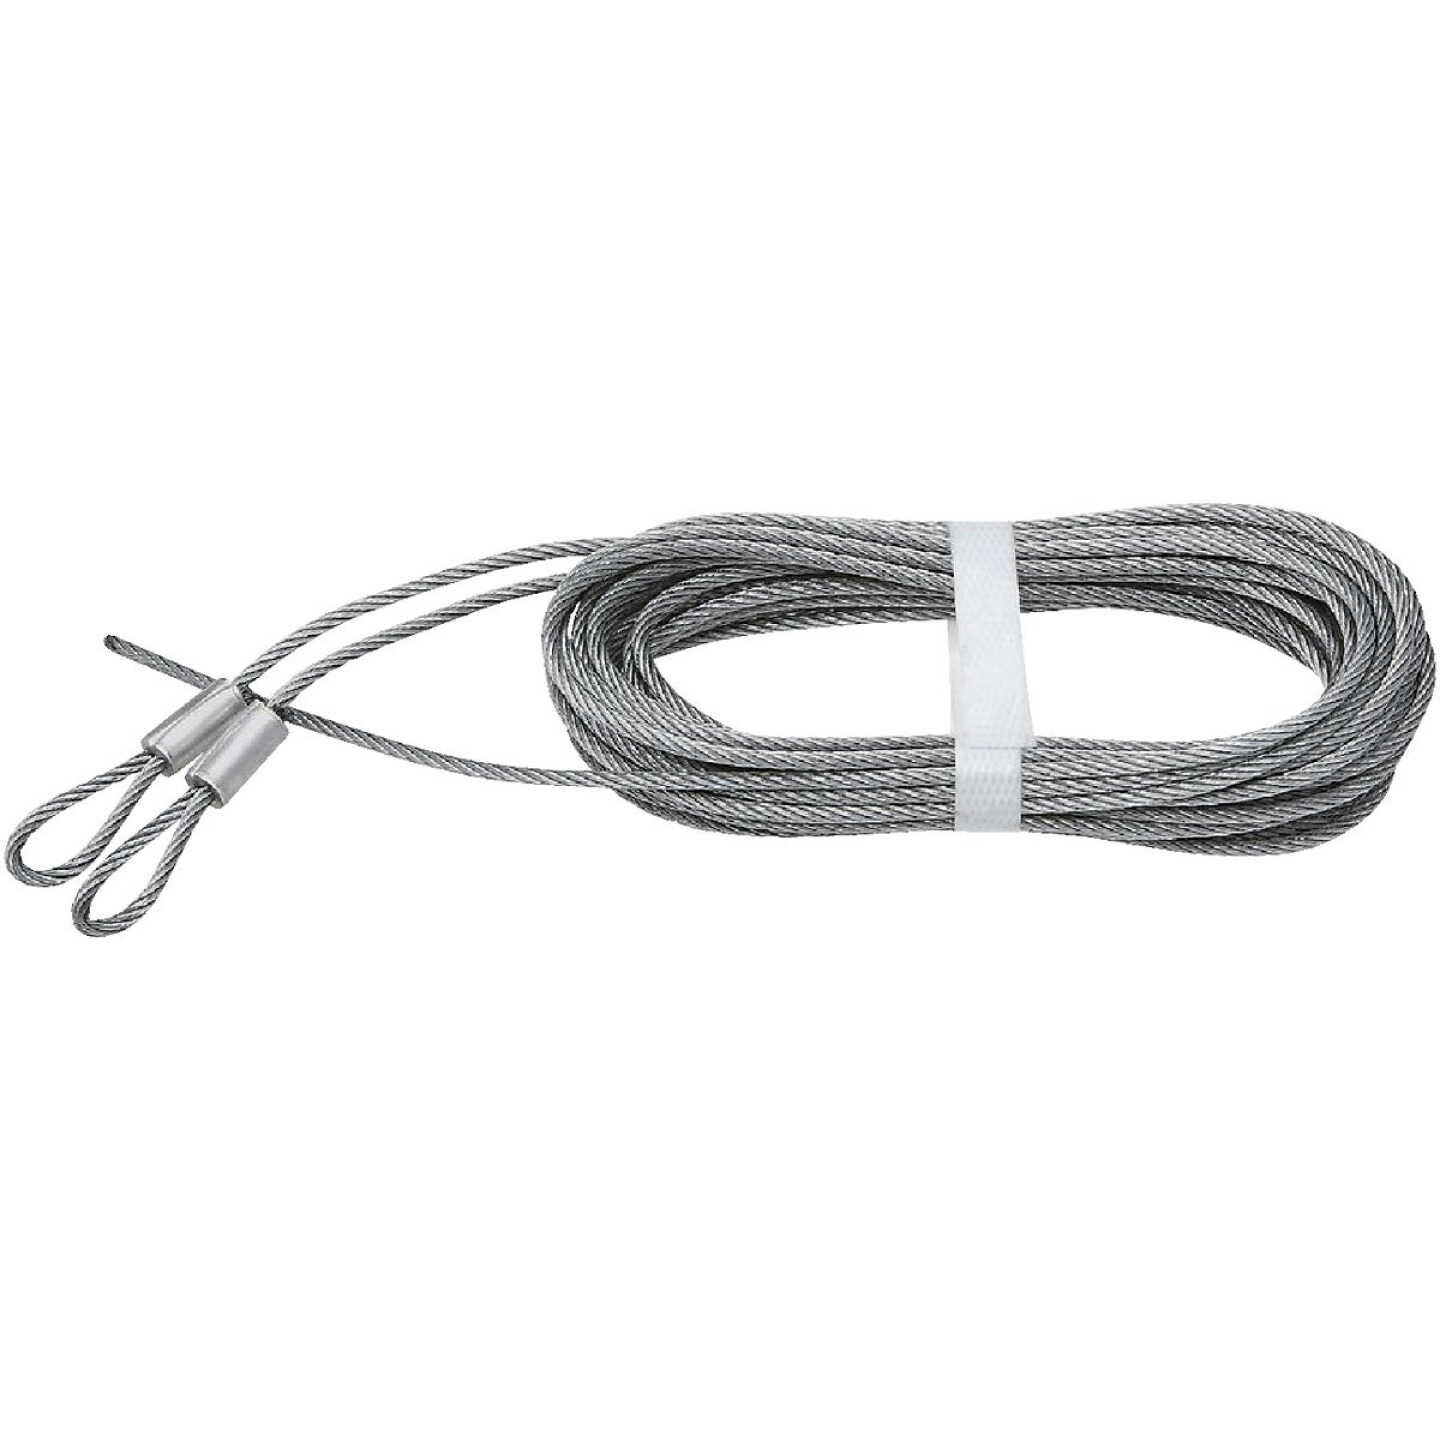 Prime-Line 1/8 In. Carbon Steel Extension Cable Image 1